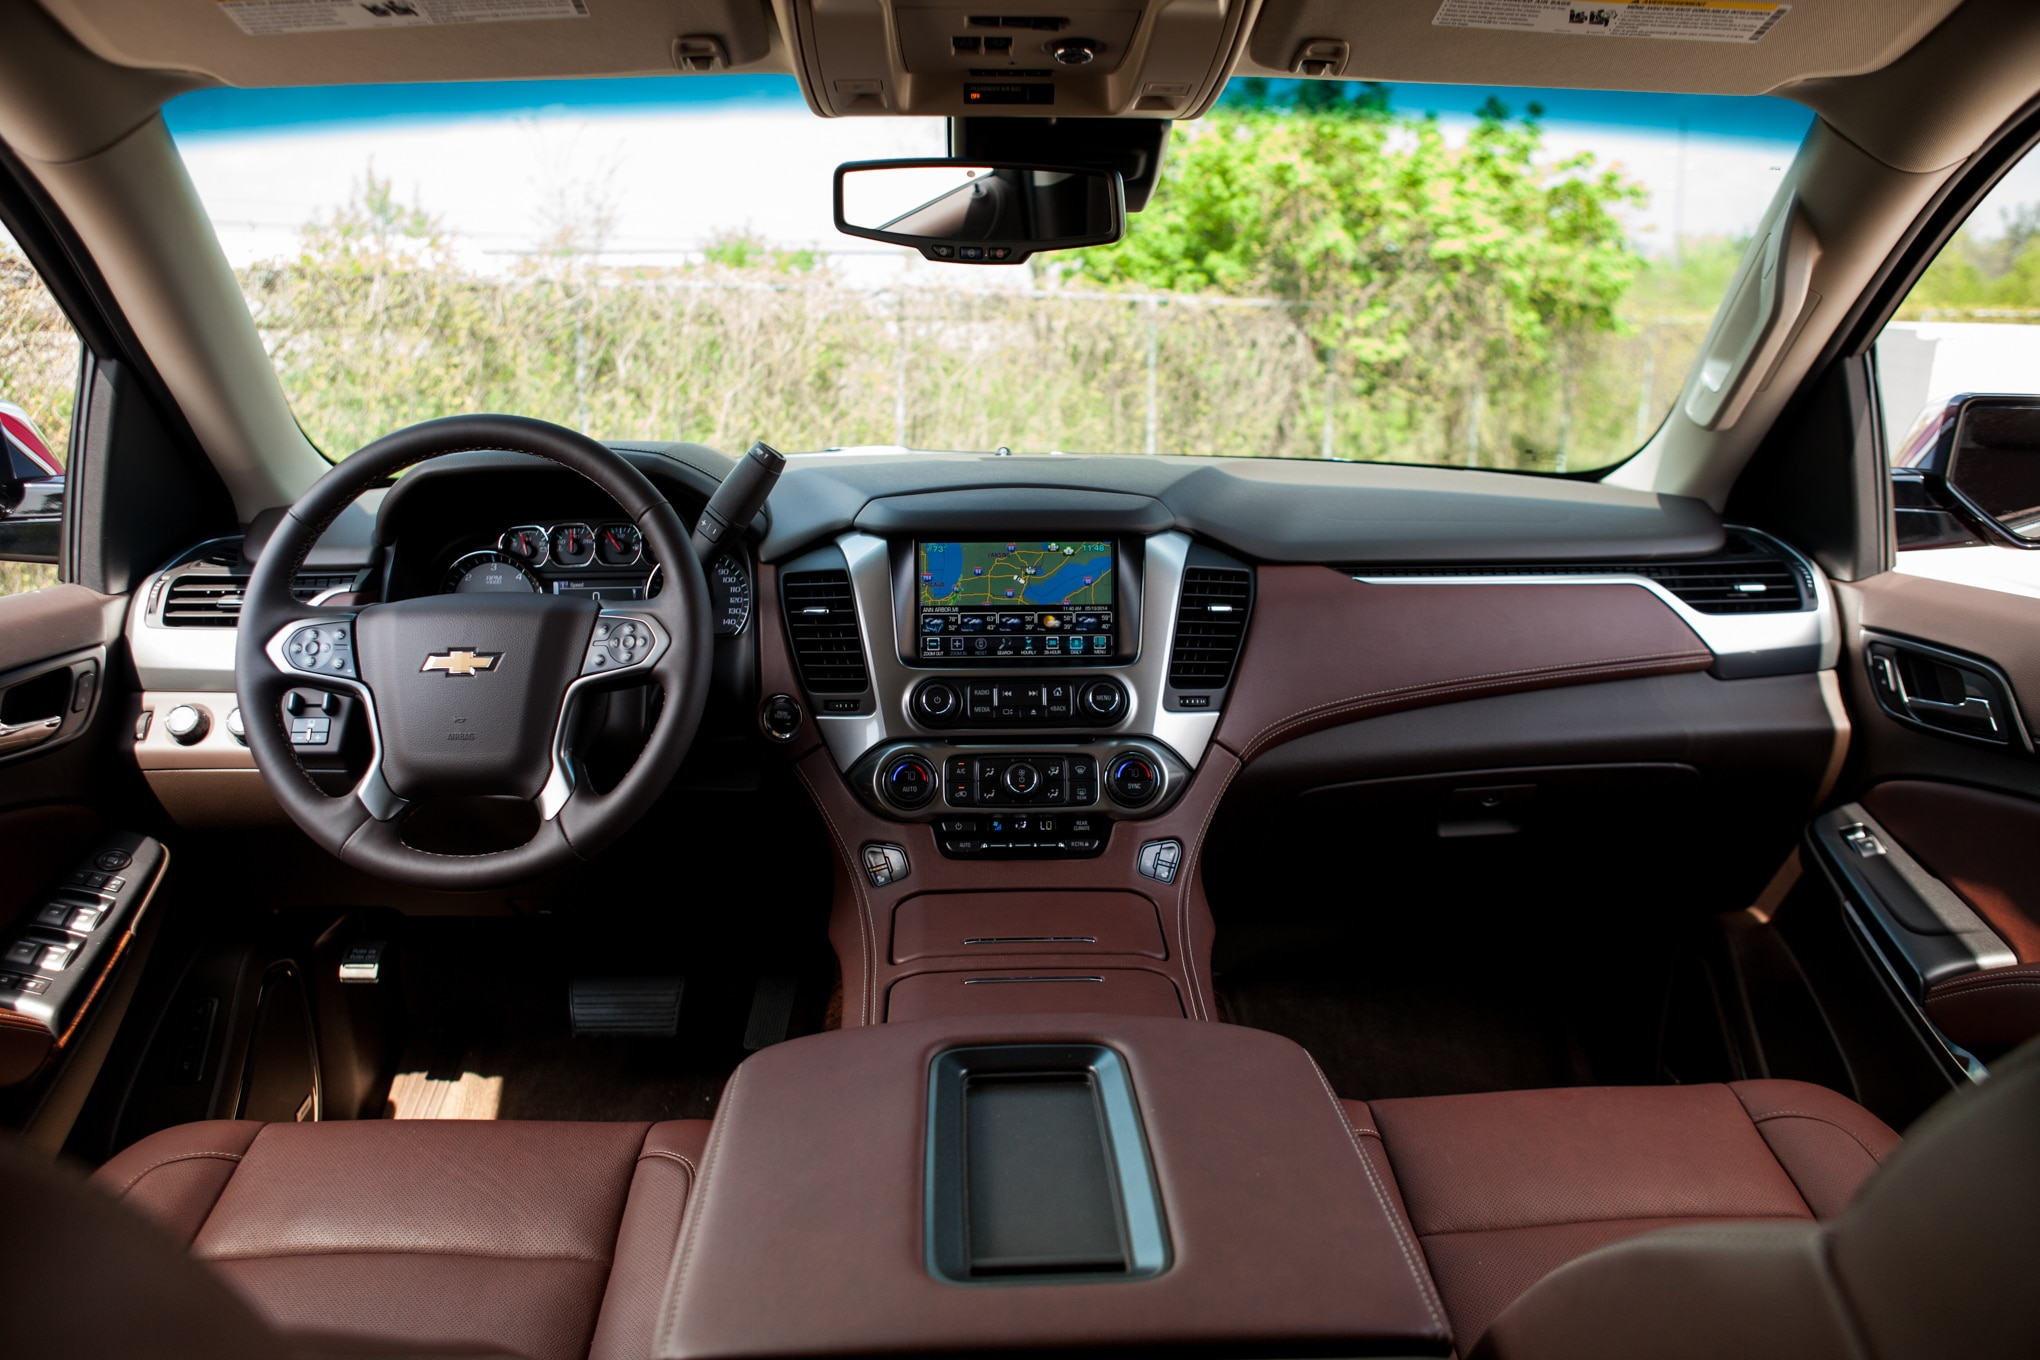 2014 Expedition Interior | Autos Classic Blog